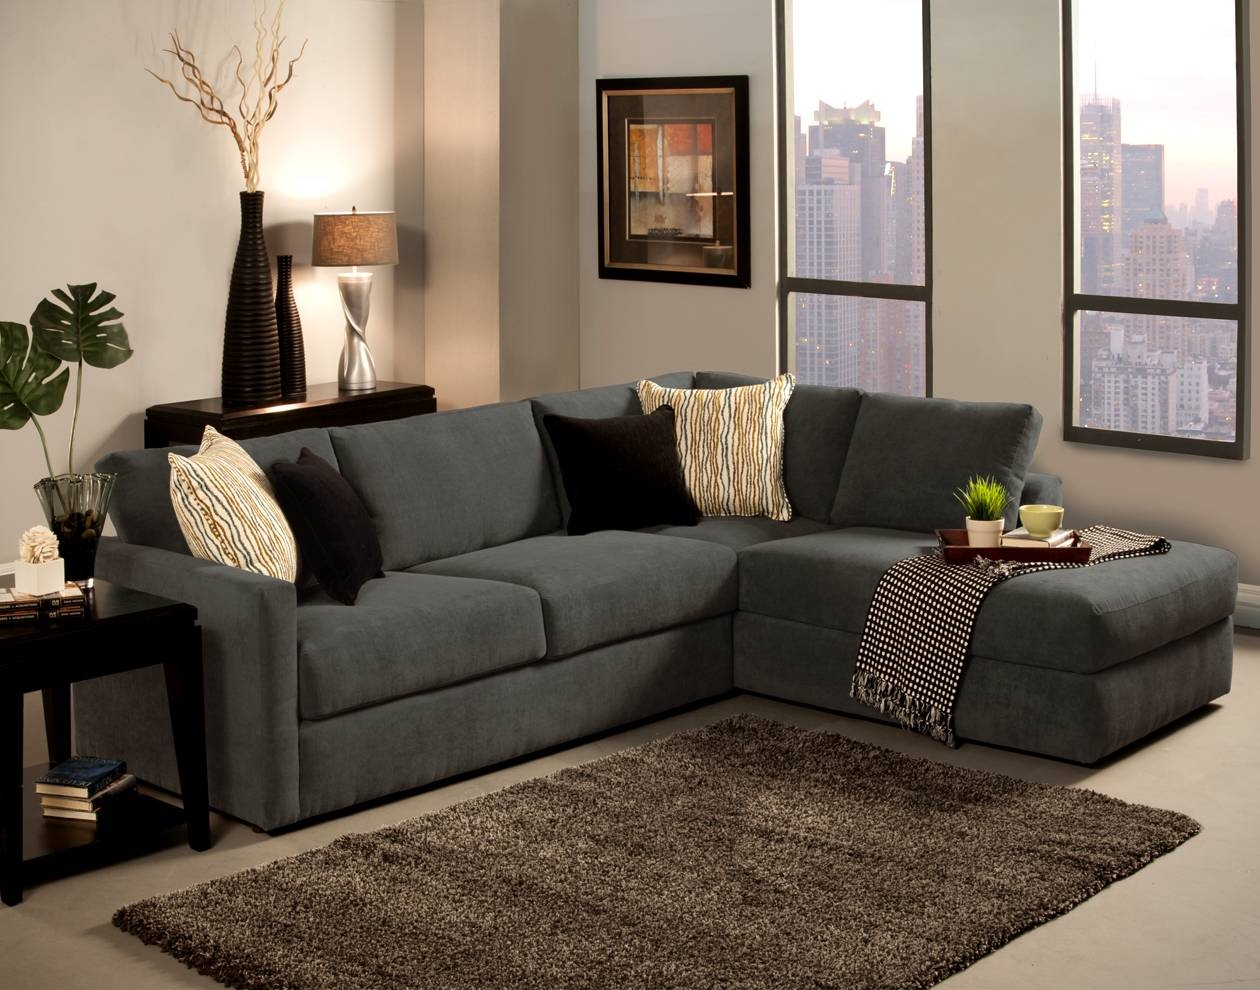 Sectional Sofa With Chaise Lounge | Tehranmix Decoration with regard to Angled Chaise Sofa (Image 18 of 30)